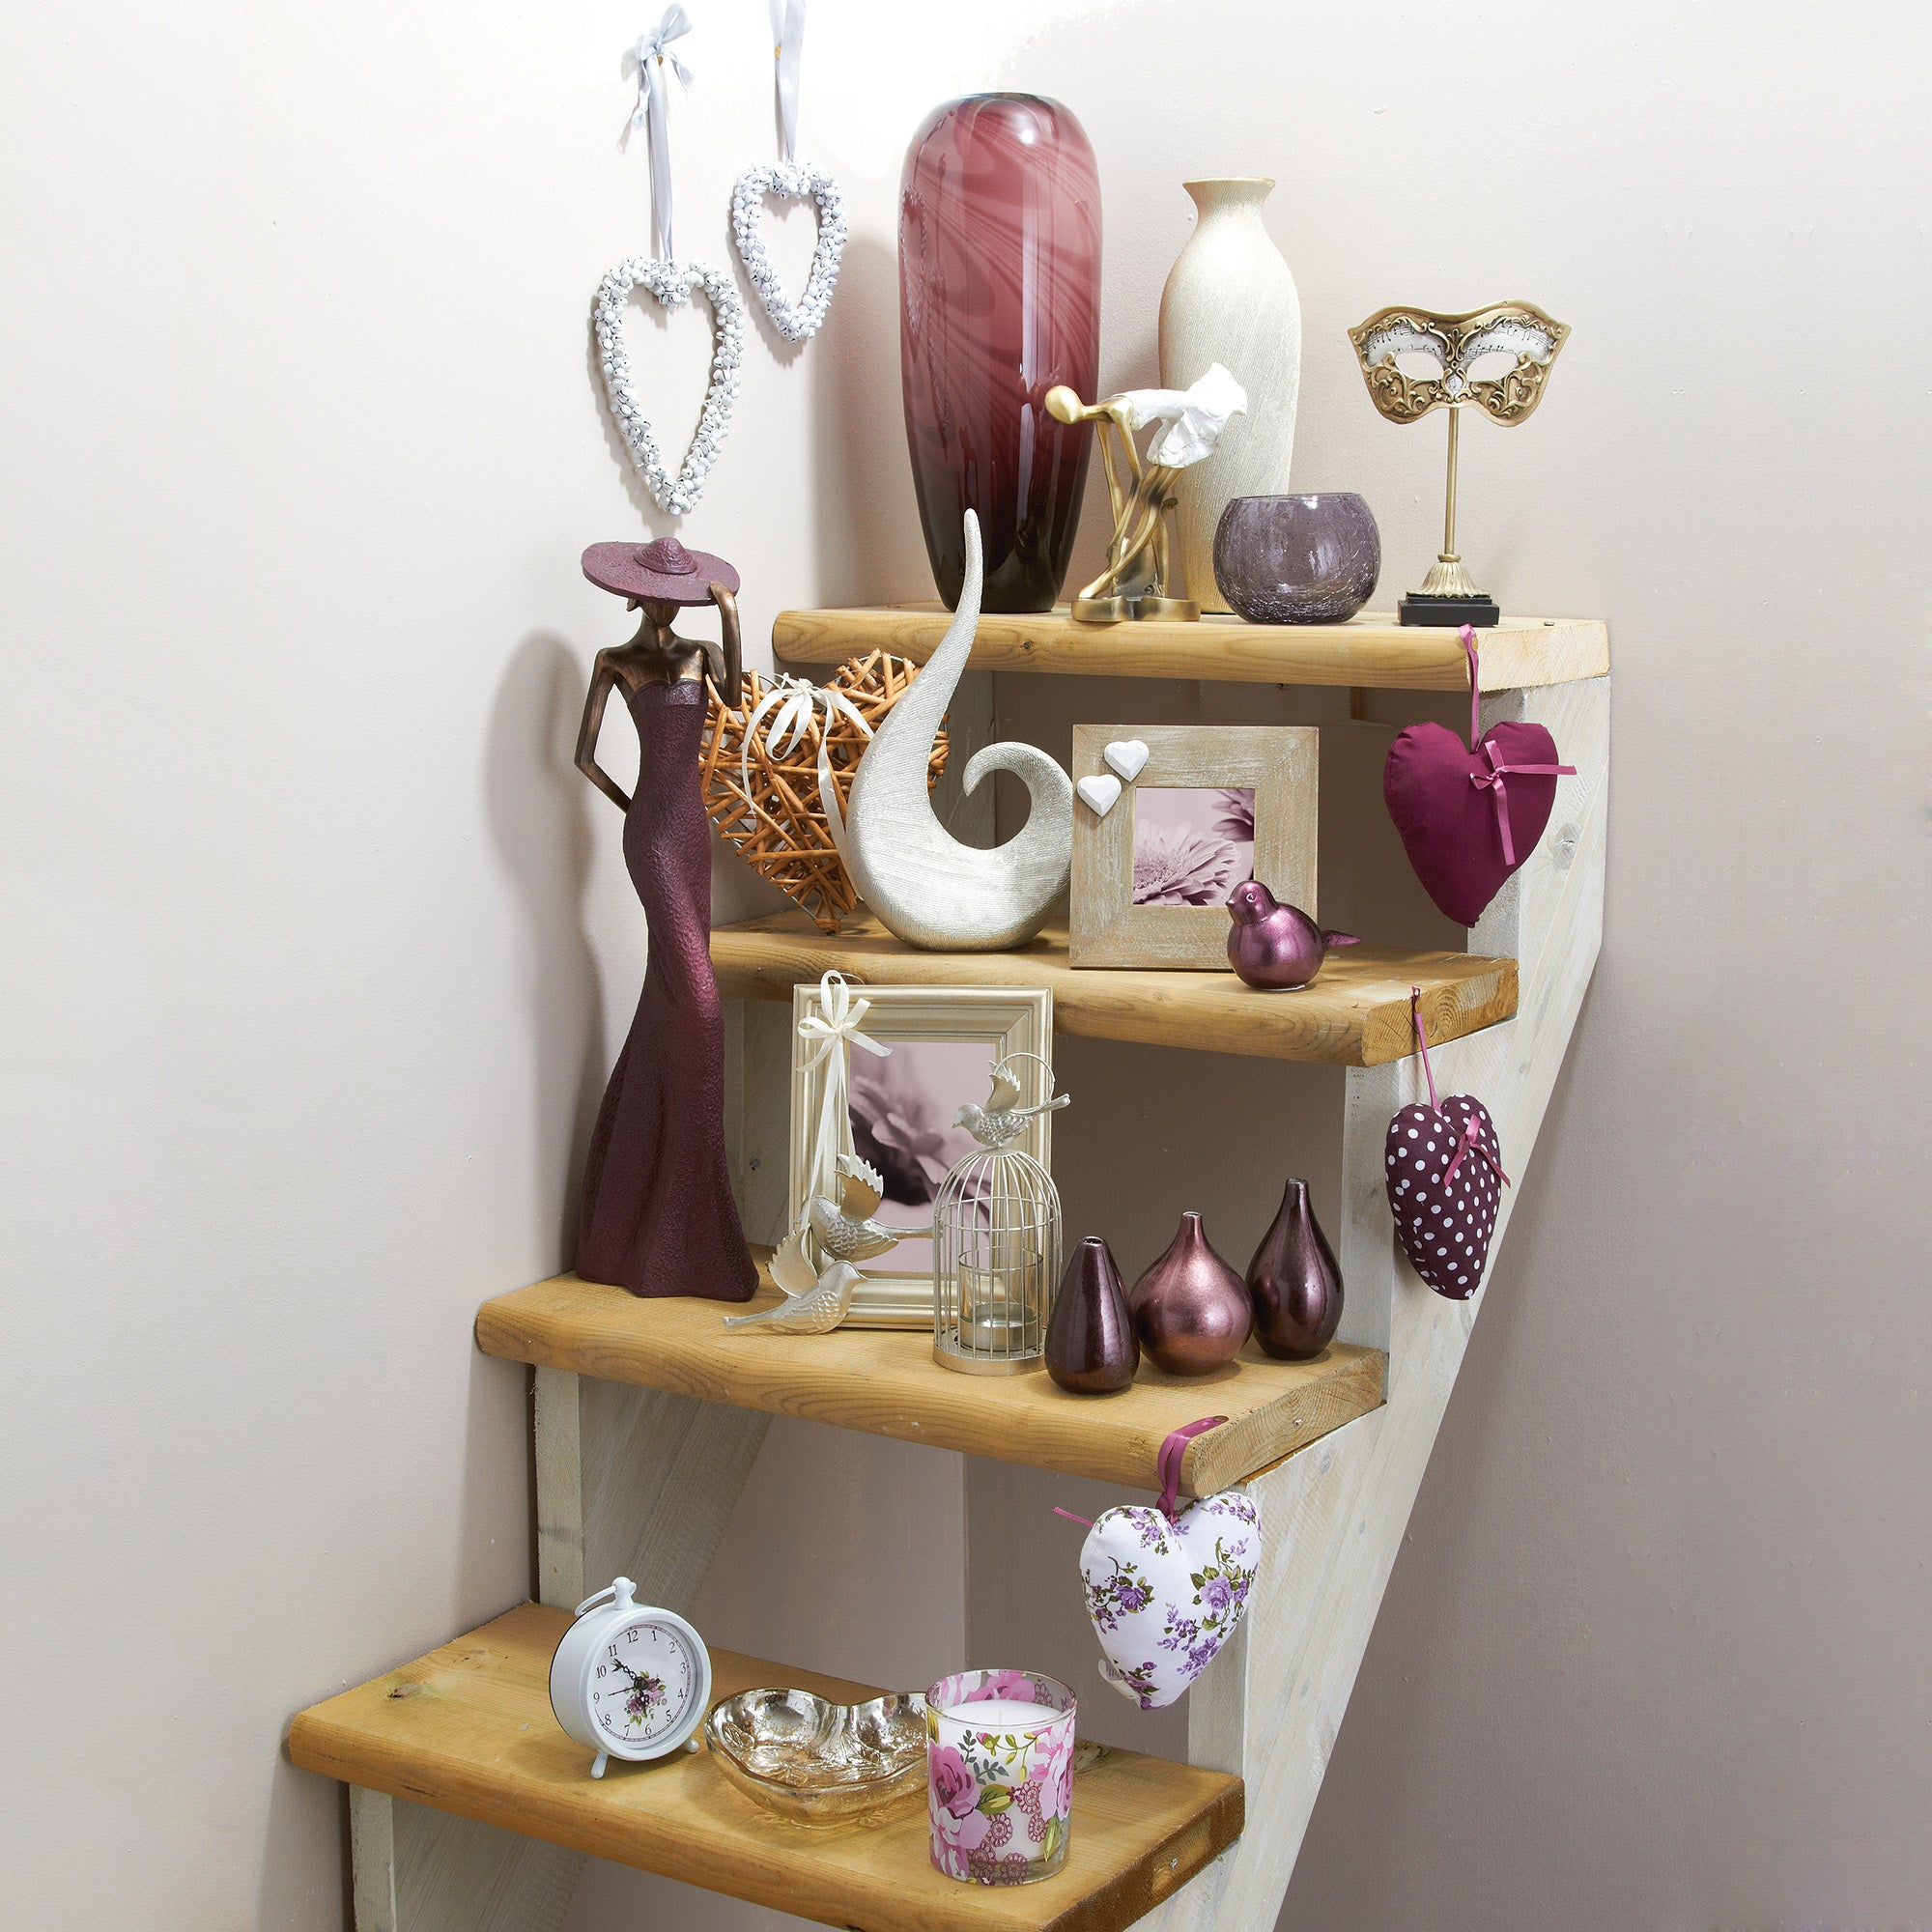 Plum Pudding Decor Collection